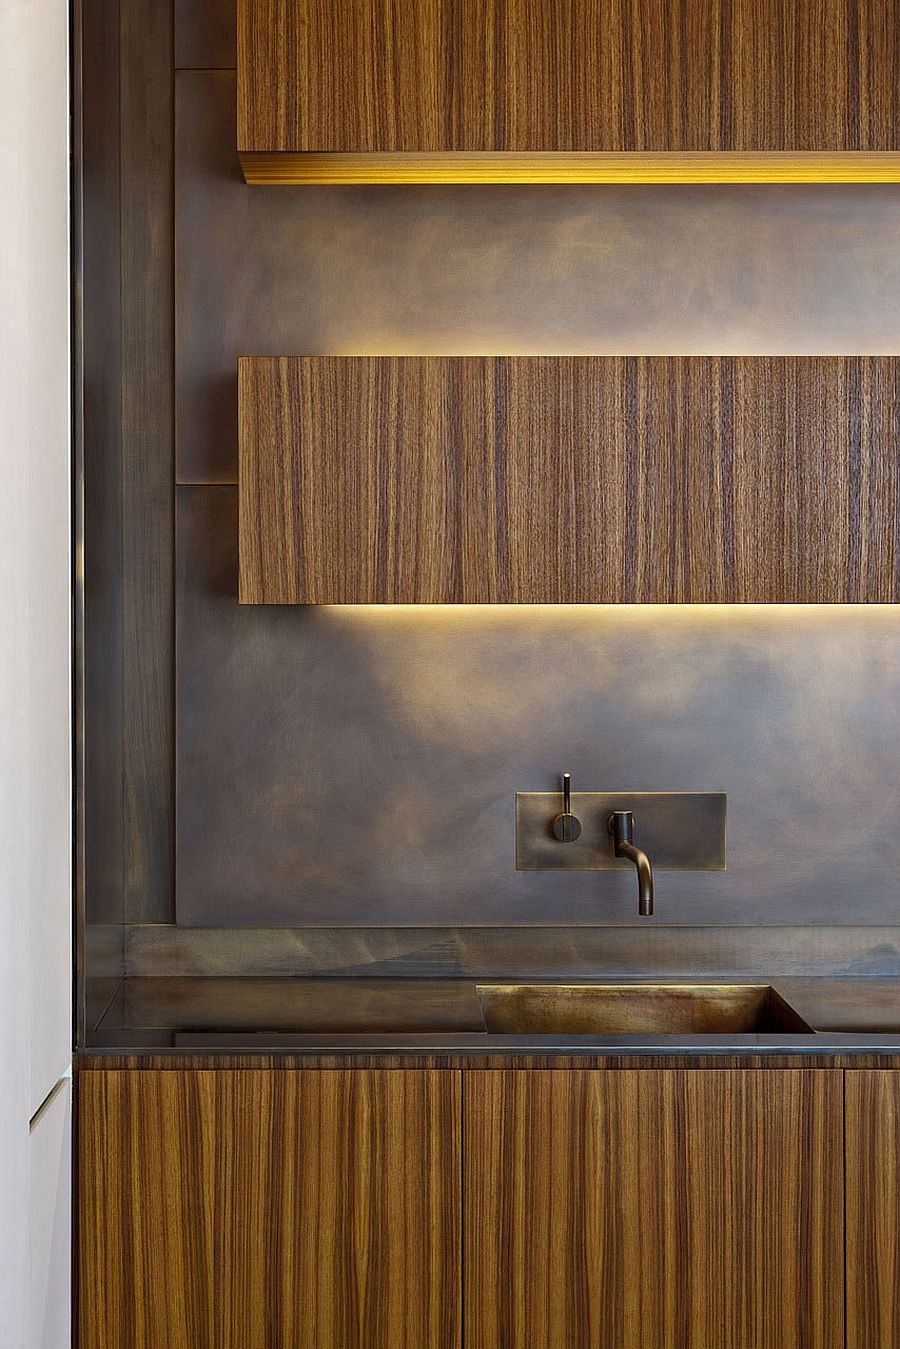 LED strip lighting gives the floating kitchen cabinets a surreal aura